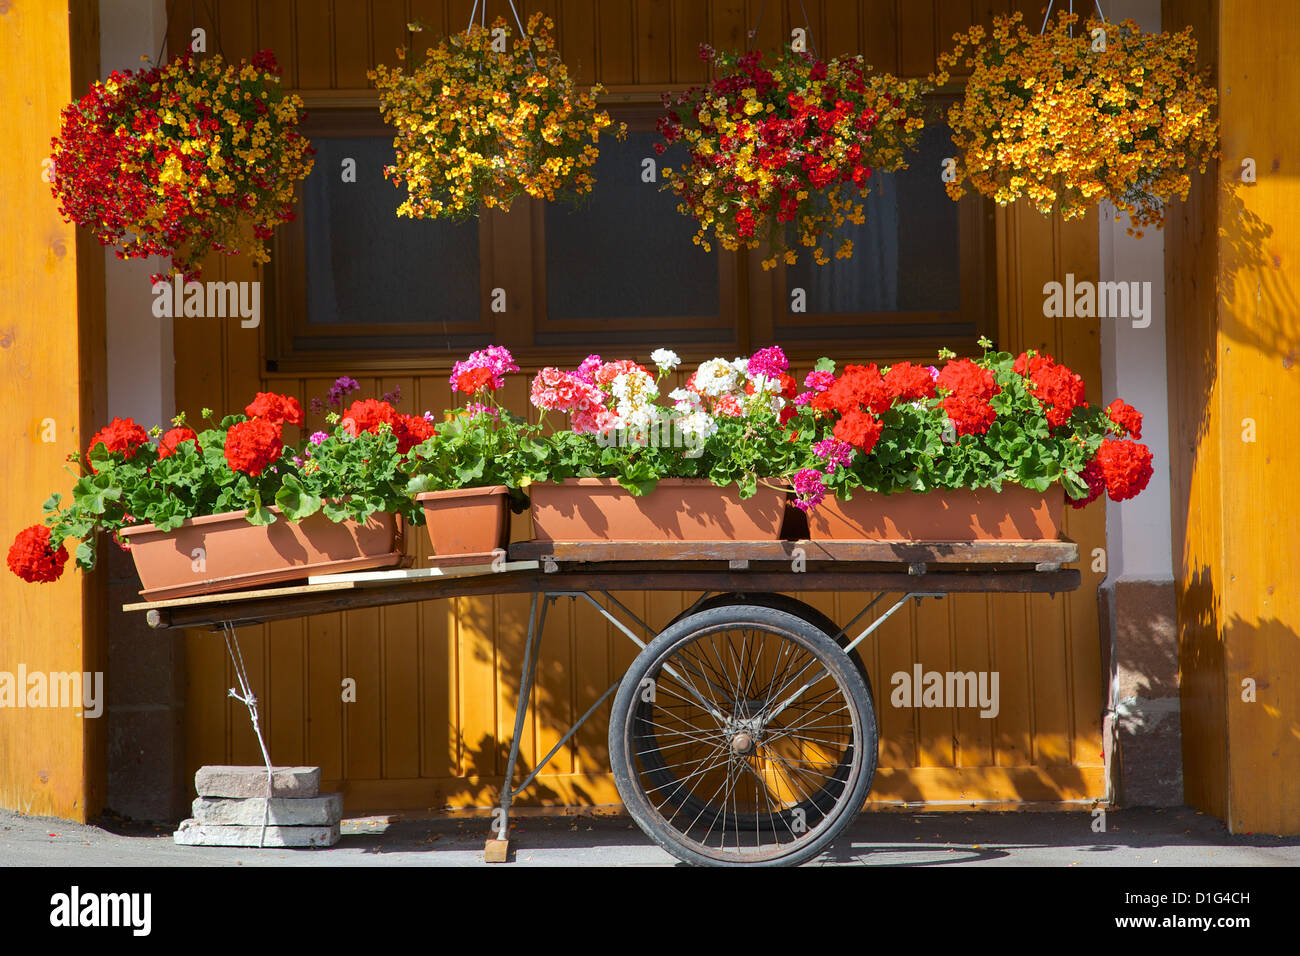 Flowers on trolley, Arabba, Belluno Province, Trento, Italy, Europe - Stock Image